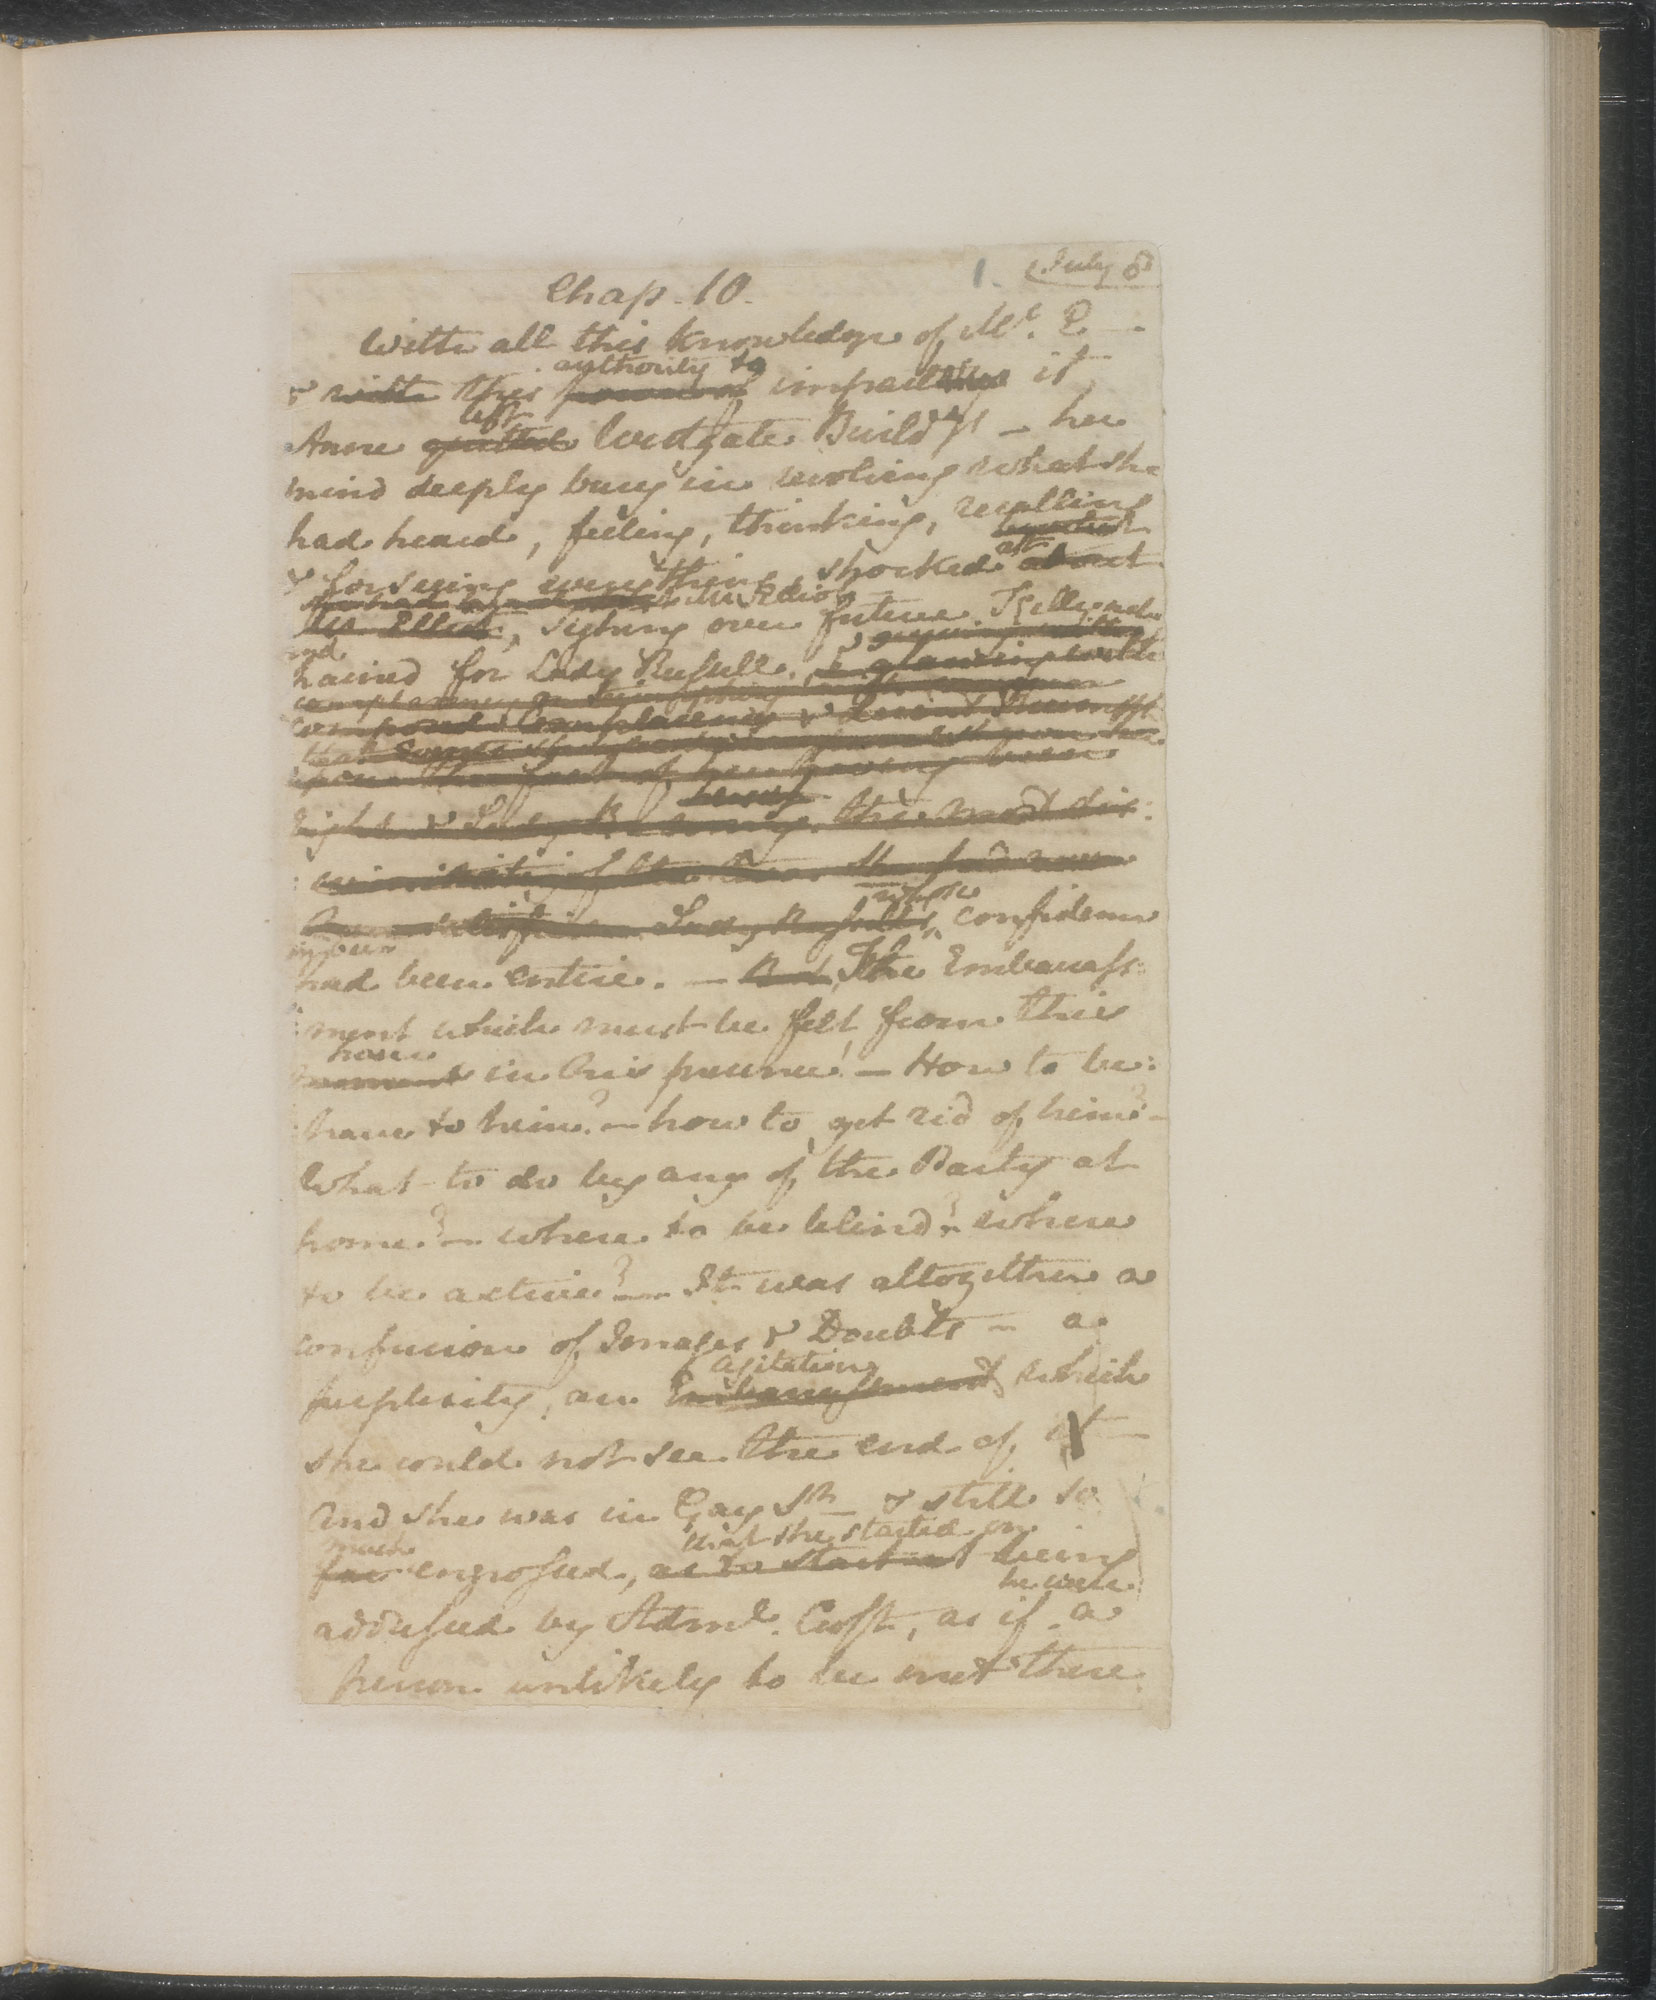 Manuscript of chapters 10 and 11 from Jane Austen's Persuasion (British Library)